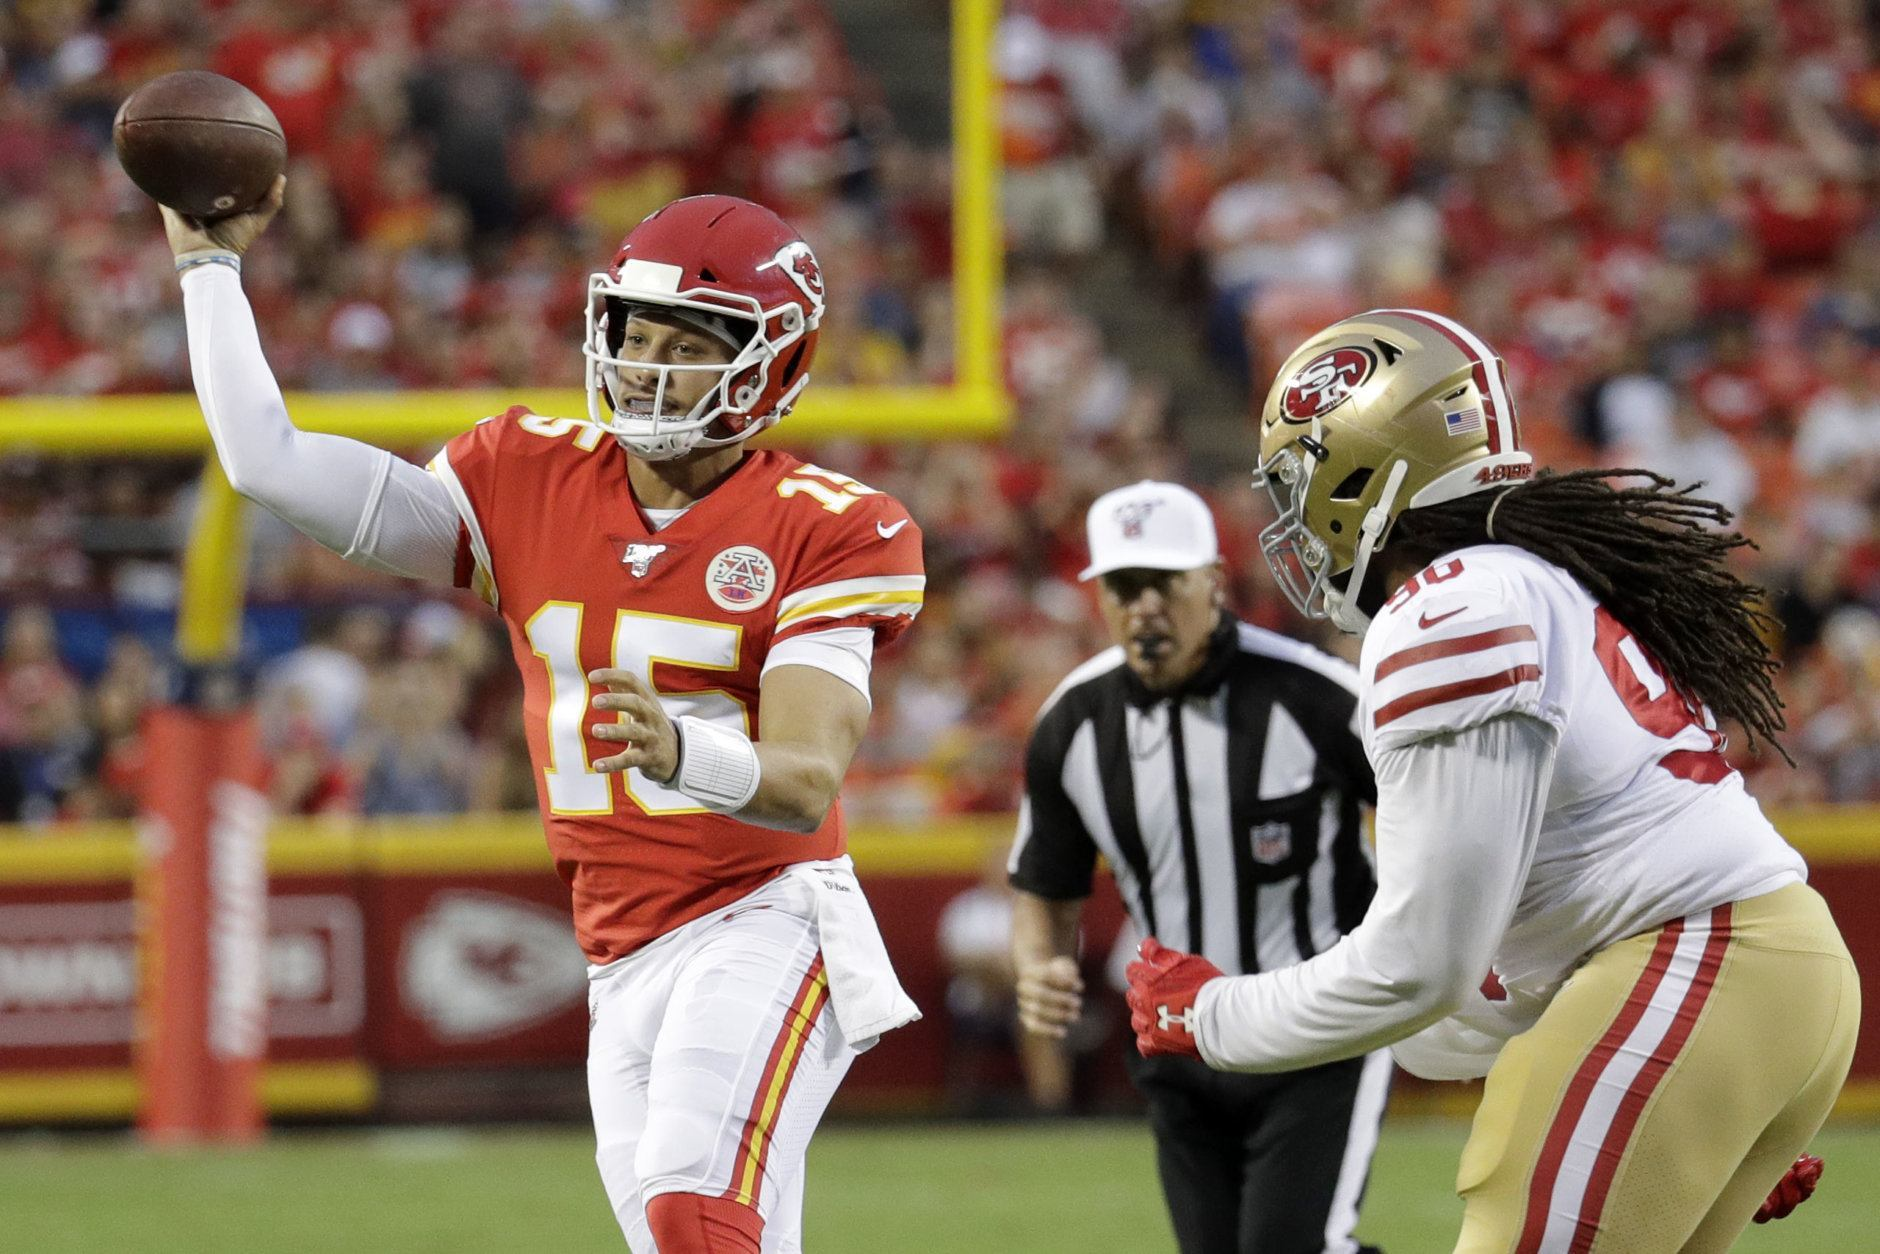 """<p><b>Patrick Mahomes has to slow down, right? <em>Right?!</em></b></p> <p>Every QB who has thrown 45 or more TDs in a season has seen that number dip the following year, and Drew Brees is the only one to even top 40 as an encore. Mahomes can <a href=""""https://www.facebook.com/watch/?v=460598814733182"""" target=""""_blank"""" rel=""""noopener noreferrer"""" data-saferedirecturl=""""https://www.google.com/url?q=https://www.facebook.com/watch/?v%3D460598814733182&amp;source=gmail&amp;ust=1567097099847000&amp;usg=AFQjCNF0cVYOo6OhcoerOK1e9iwY34ag5g"""">literally throw the ball out of the stadium</a>, but can he direct it to open targets in historic fashion again?</p>"""